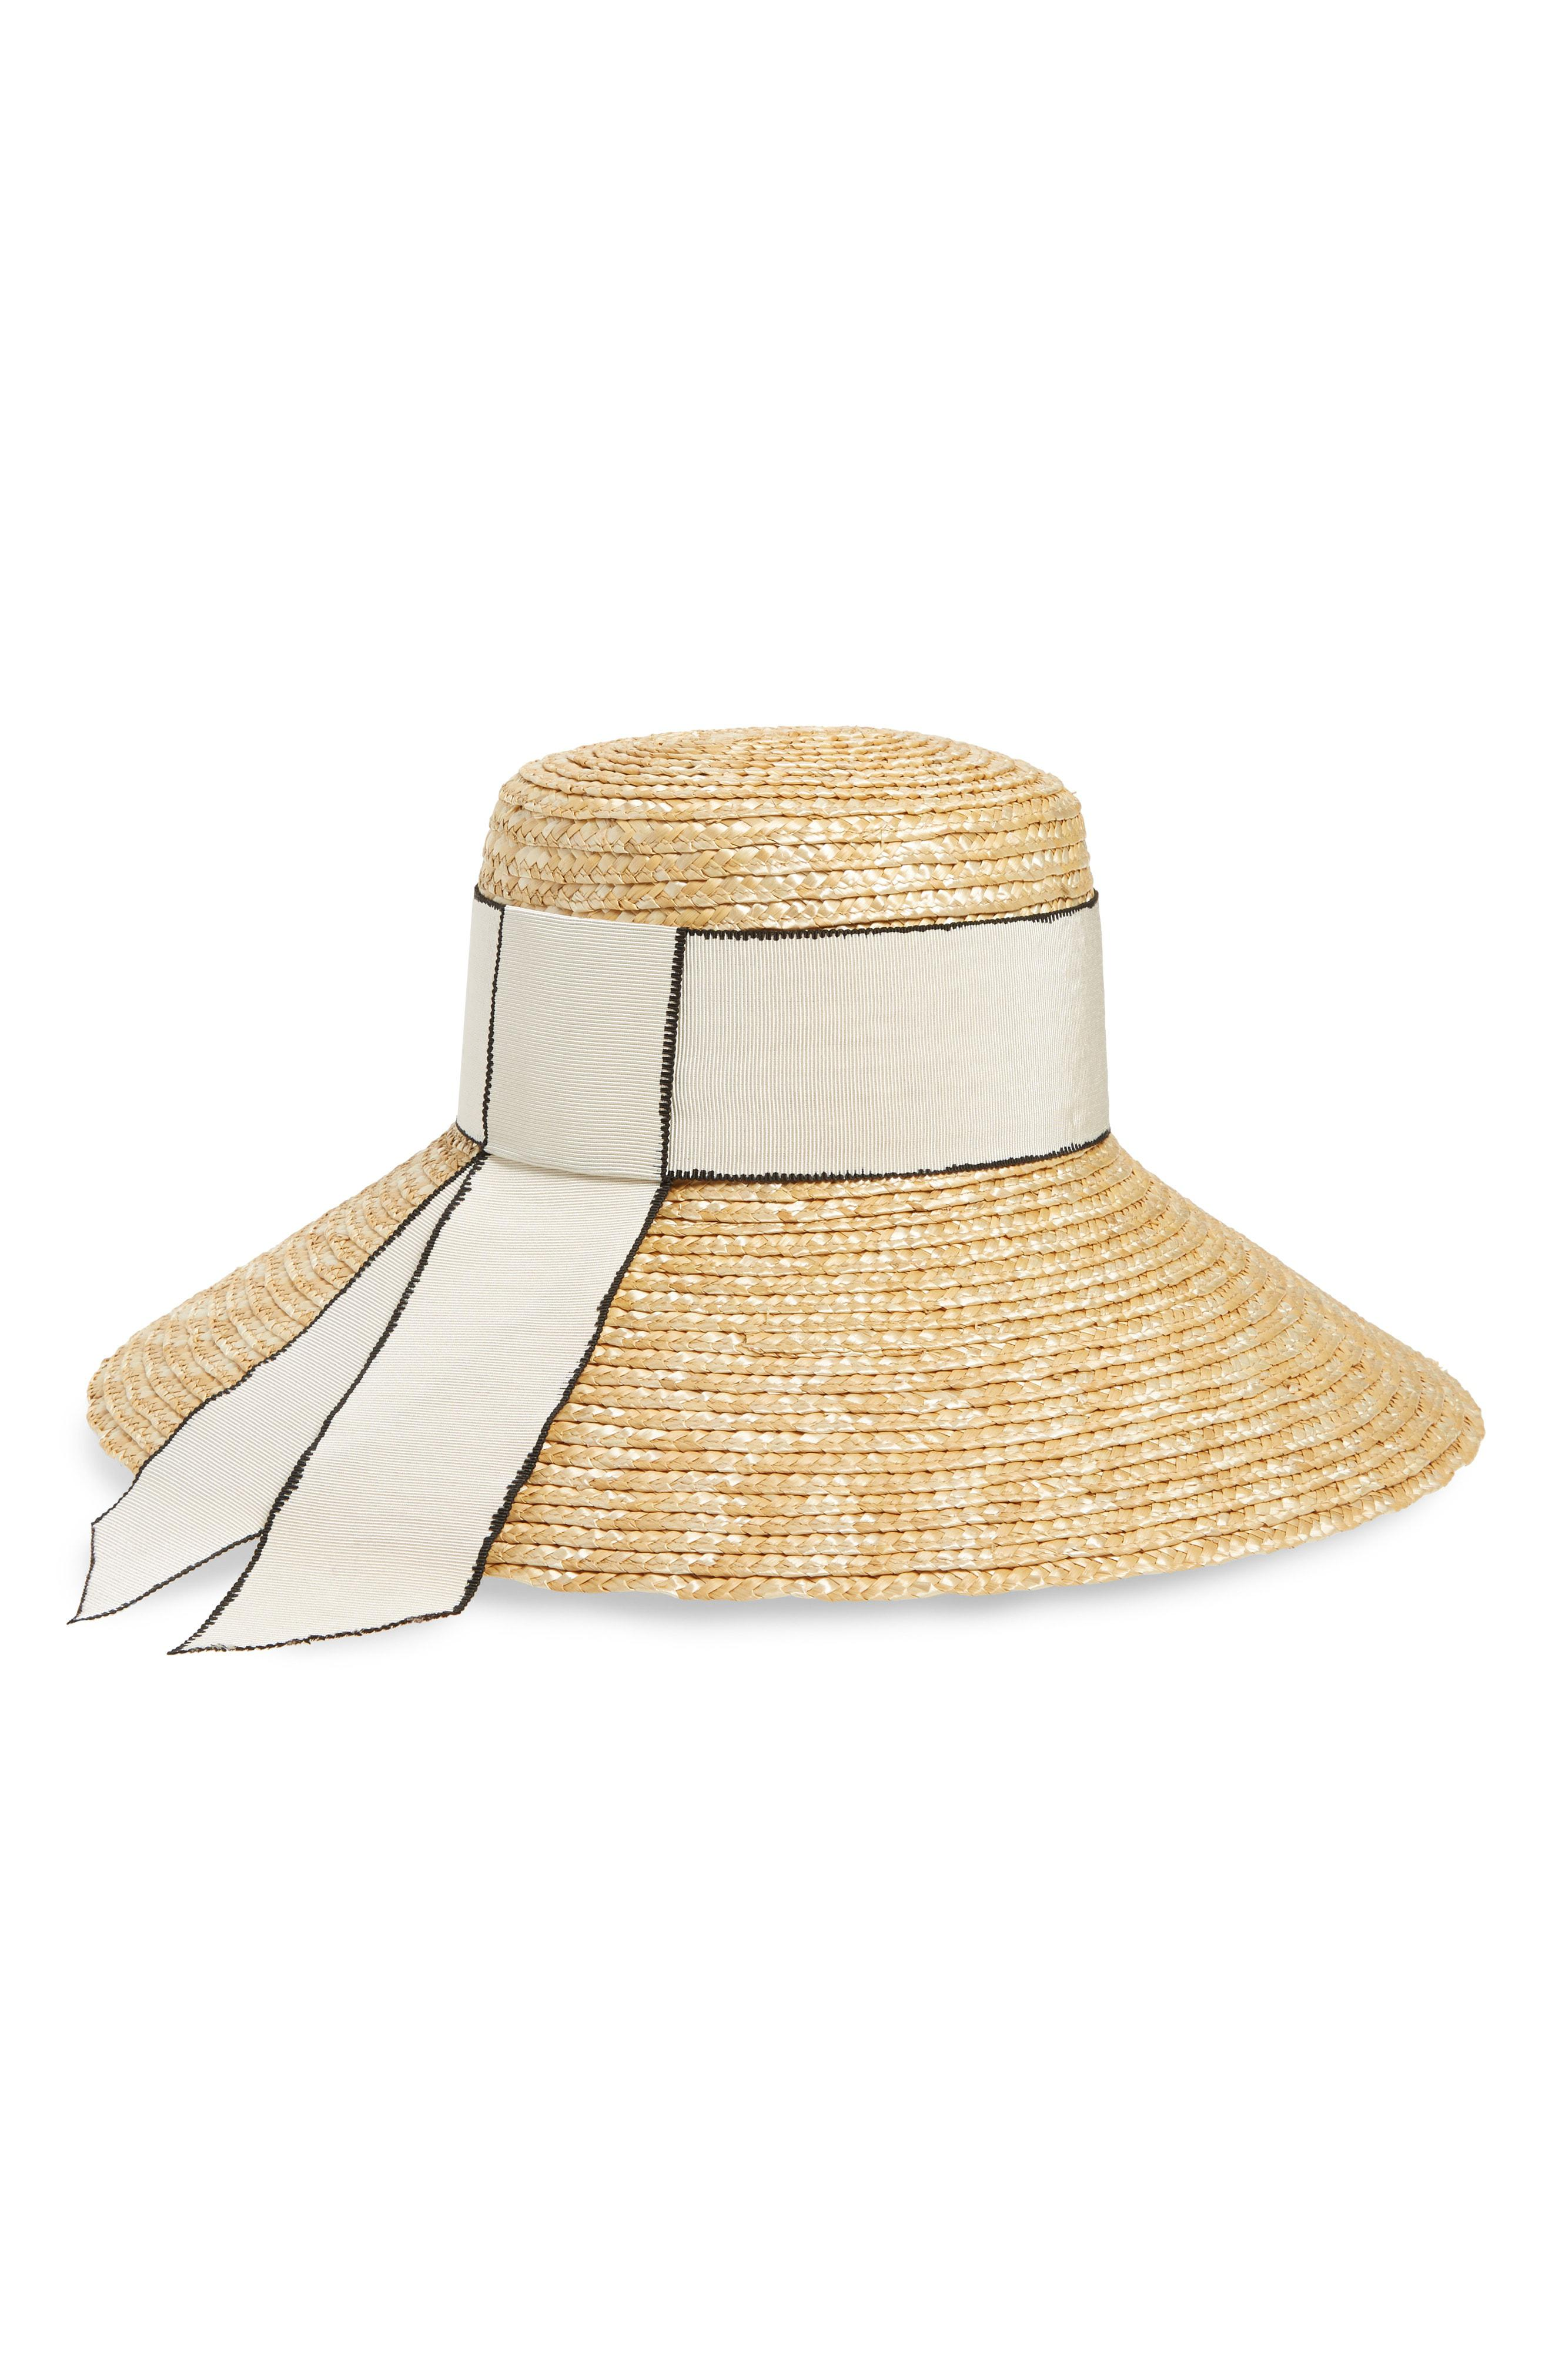 Lyst - Eugenia Kim Annabelle Straw Hat in Natural aa051404e106